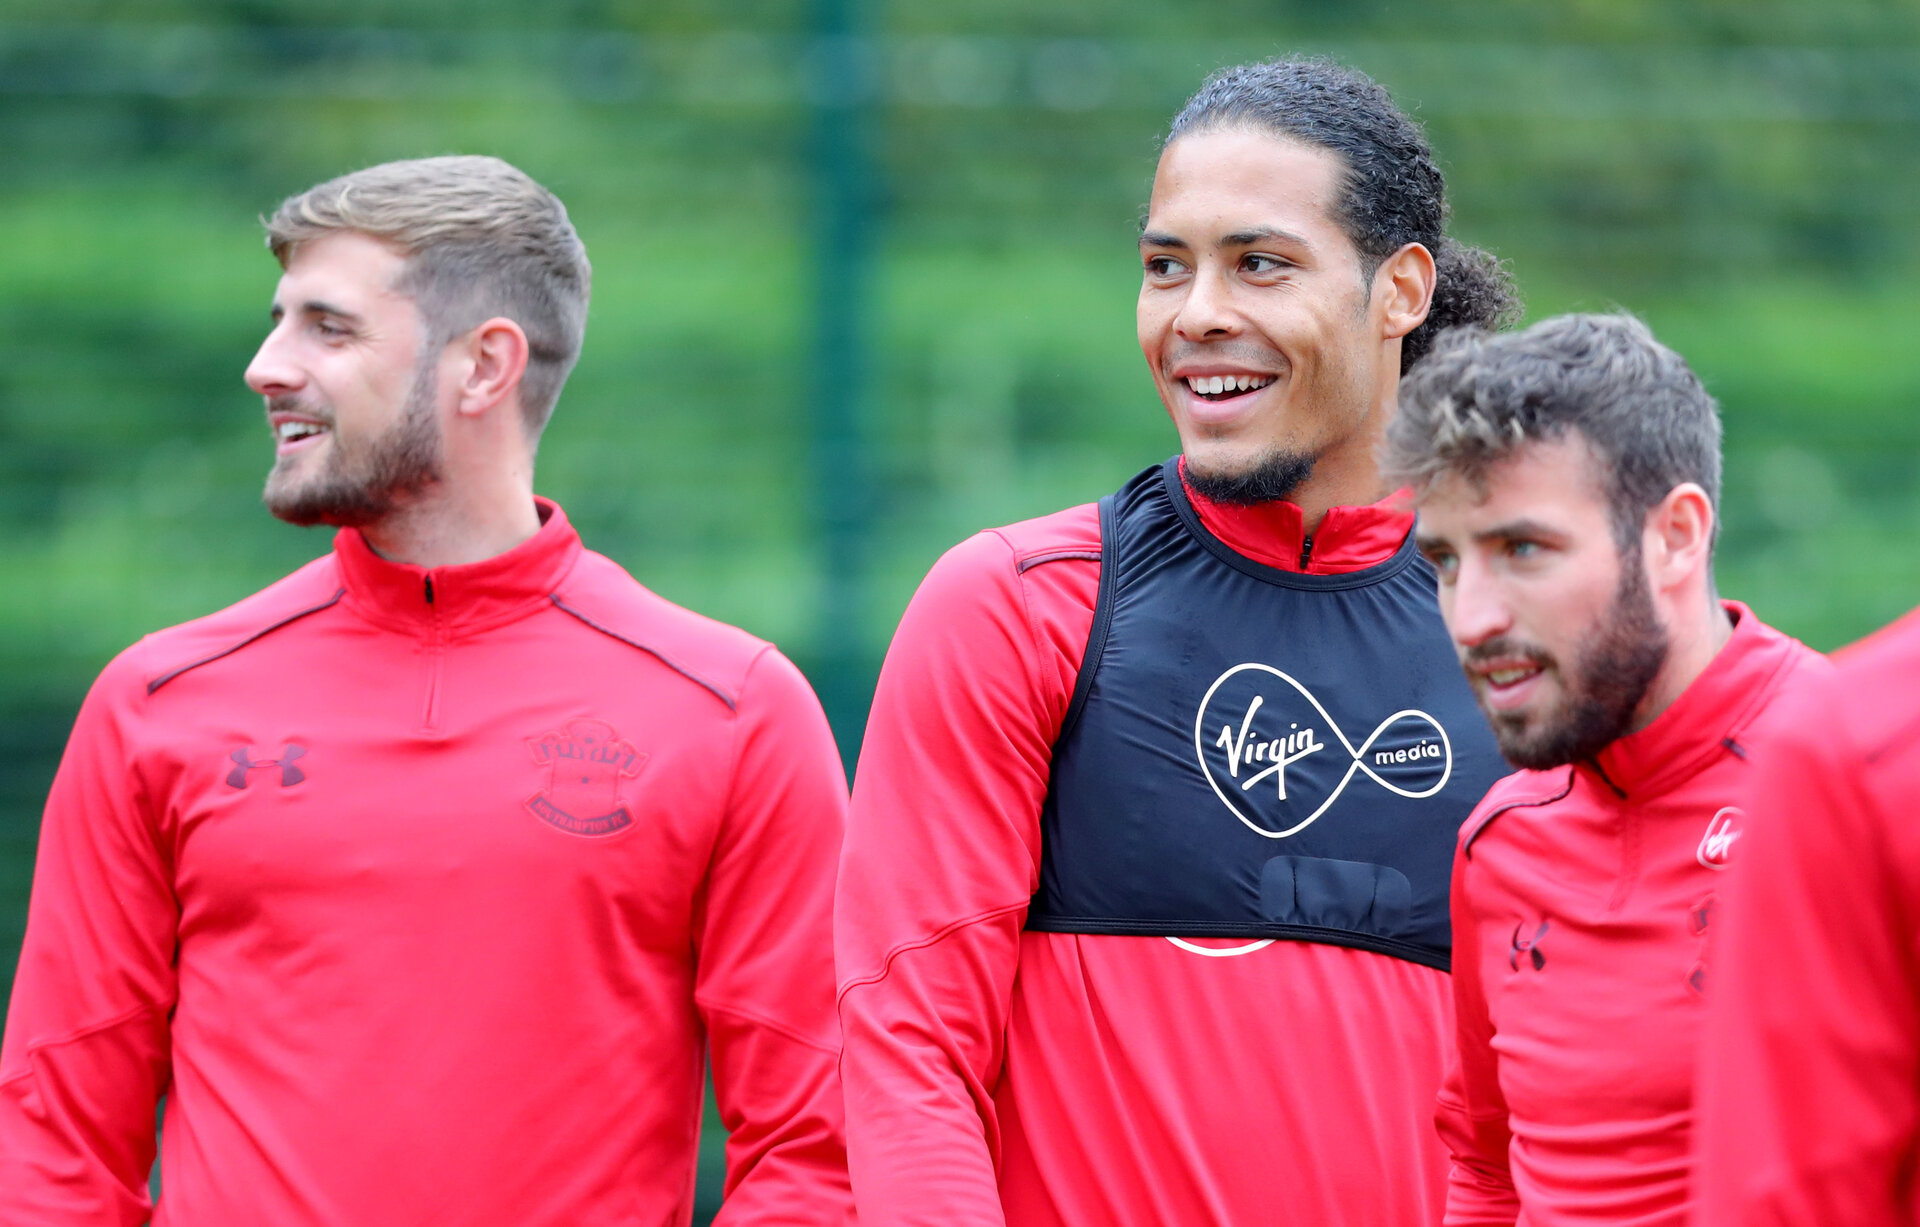 SOUTHAMPTON, ENGLAND - SEPTEMBER 21: Virgil Van Dijk during a Southampton FC training session at the Staplewood Campus on September 21, 2017 in Southampton, England. (Photo by Matt Watson/Southampton FC via Getty Images)